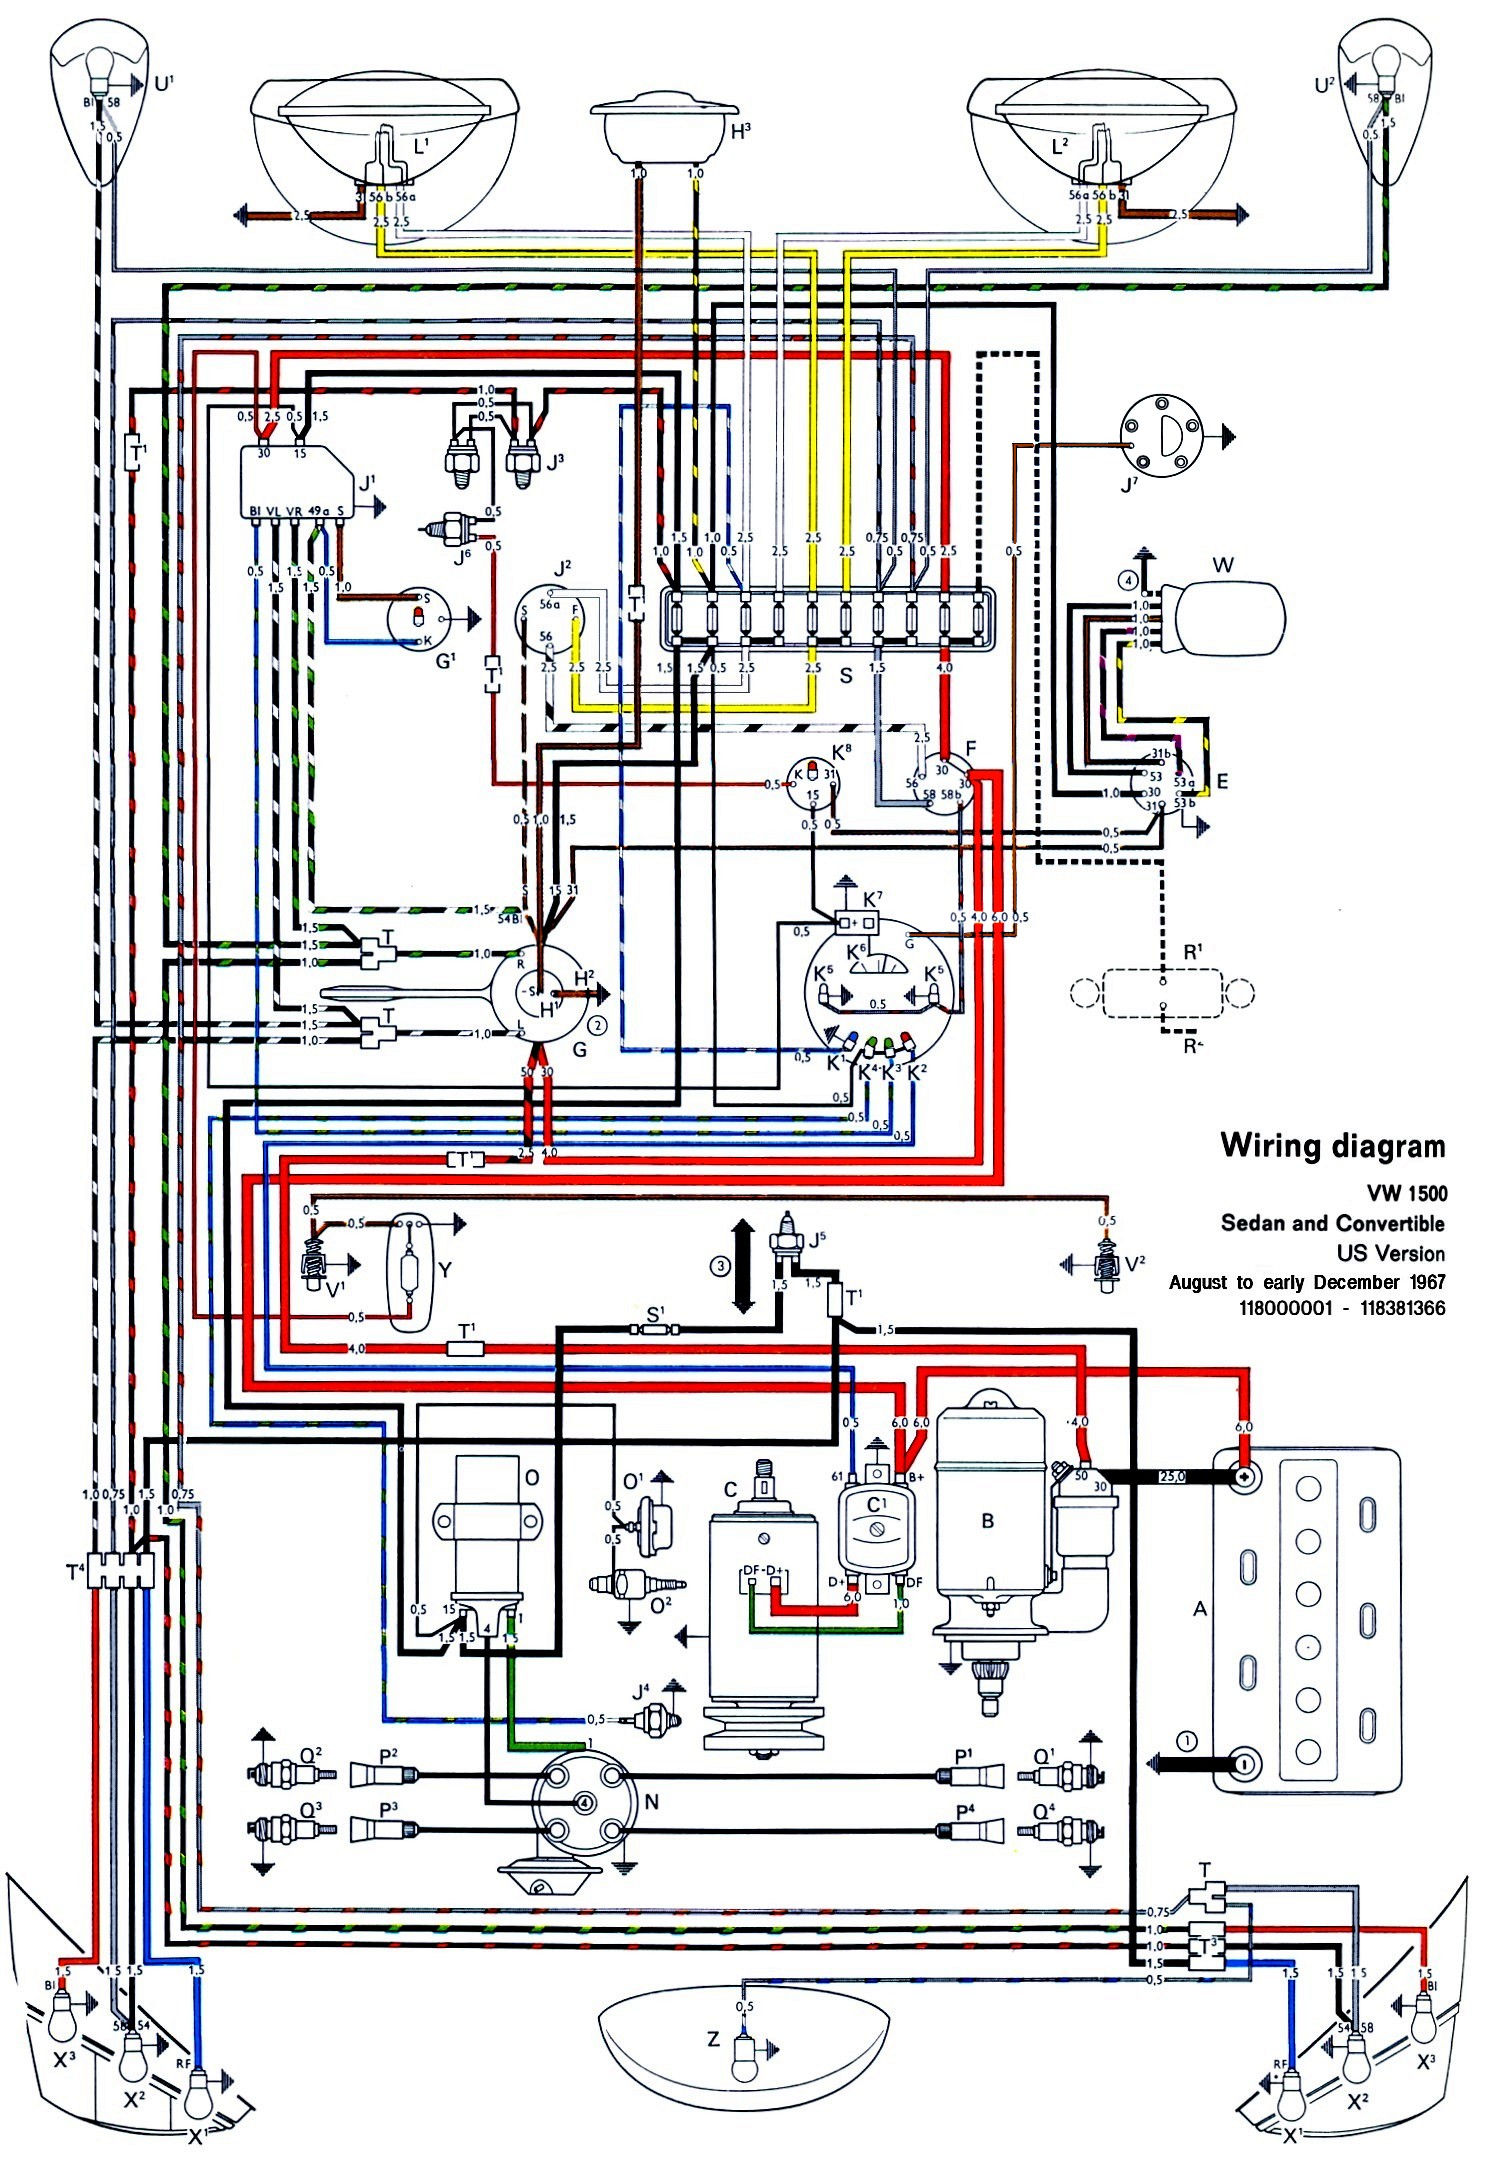 Vw 2 5l Engine furthermore 1966 bus wiring diagram usa also Schma Faisceau Lectrique De Vw Cox Coccinelle 1200 1300 1302 1303 further Post vw Beetle Fuse Box Diagram 271876 additionally Wiringt3. on 1974 vw super beetle wiring diagram